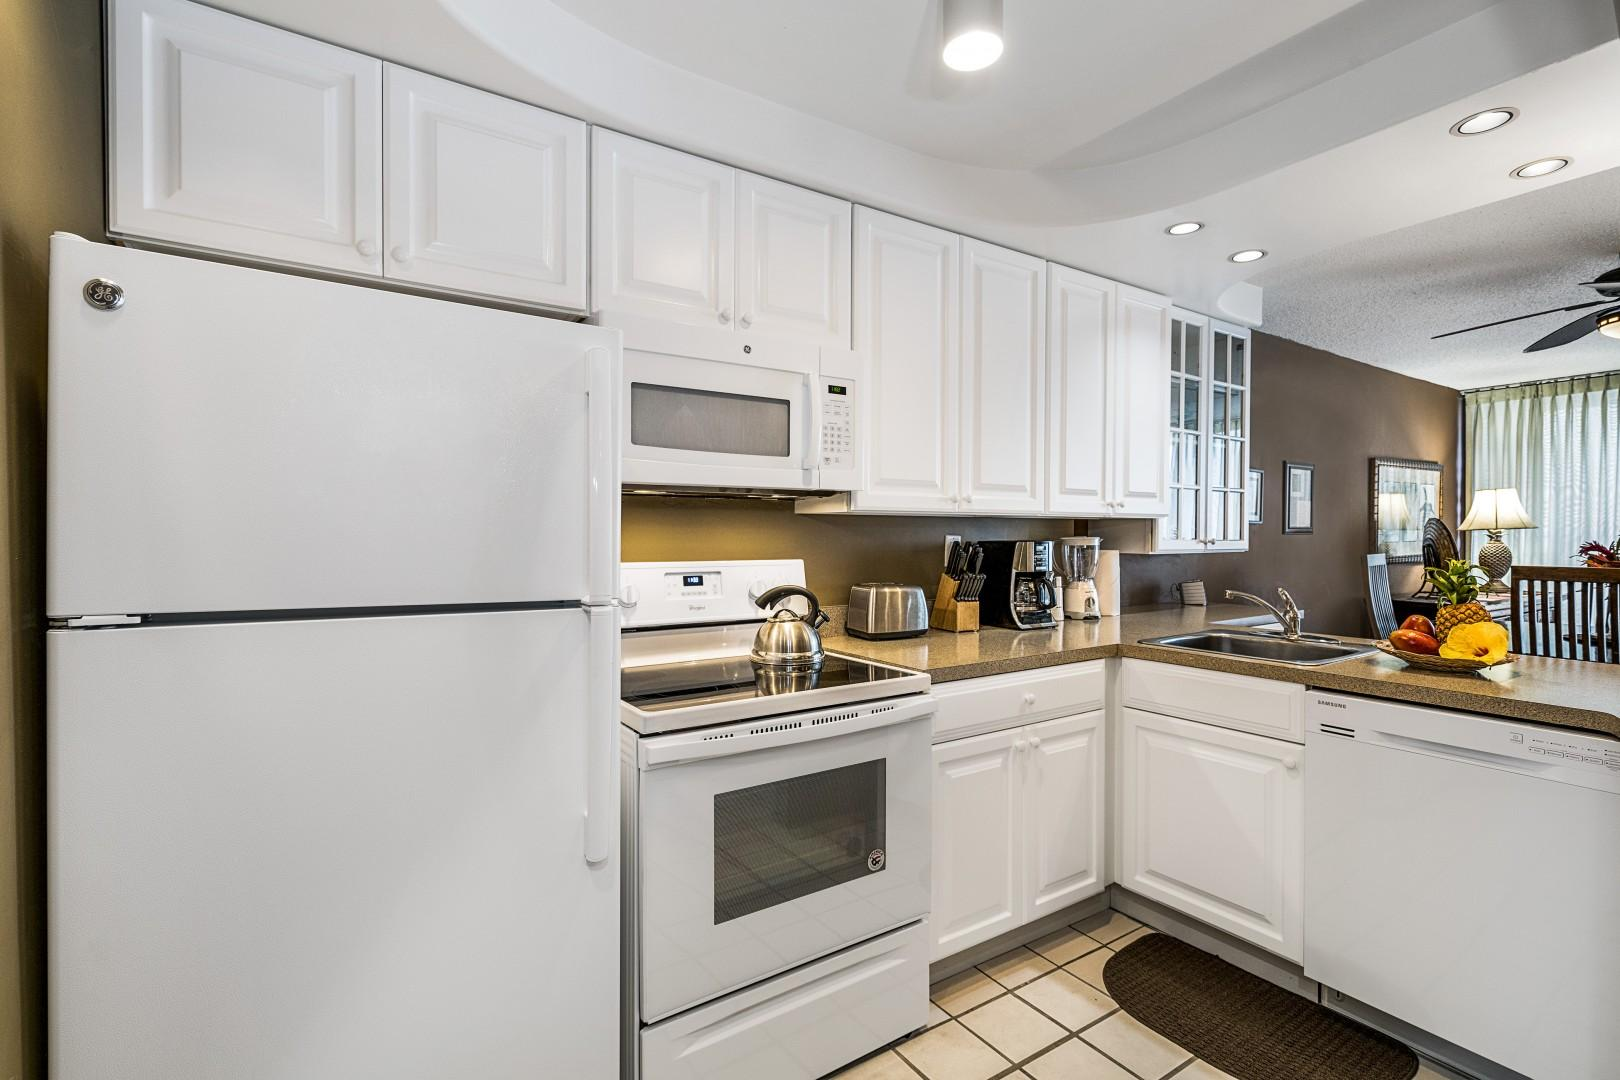 Fully equipped kitchen steps from outdoor dining!